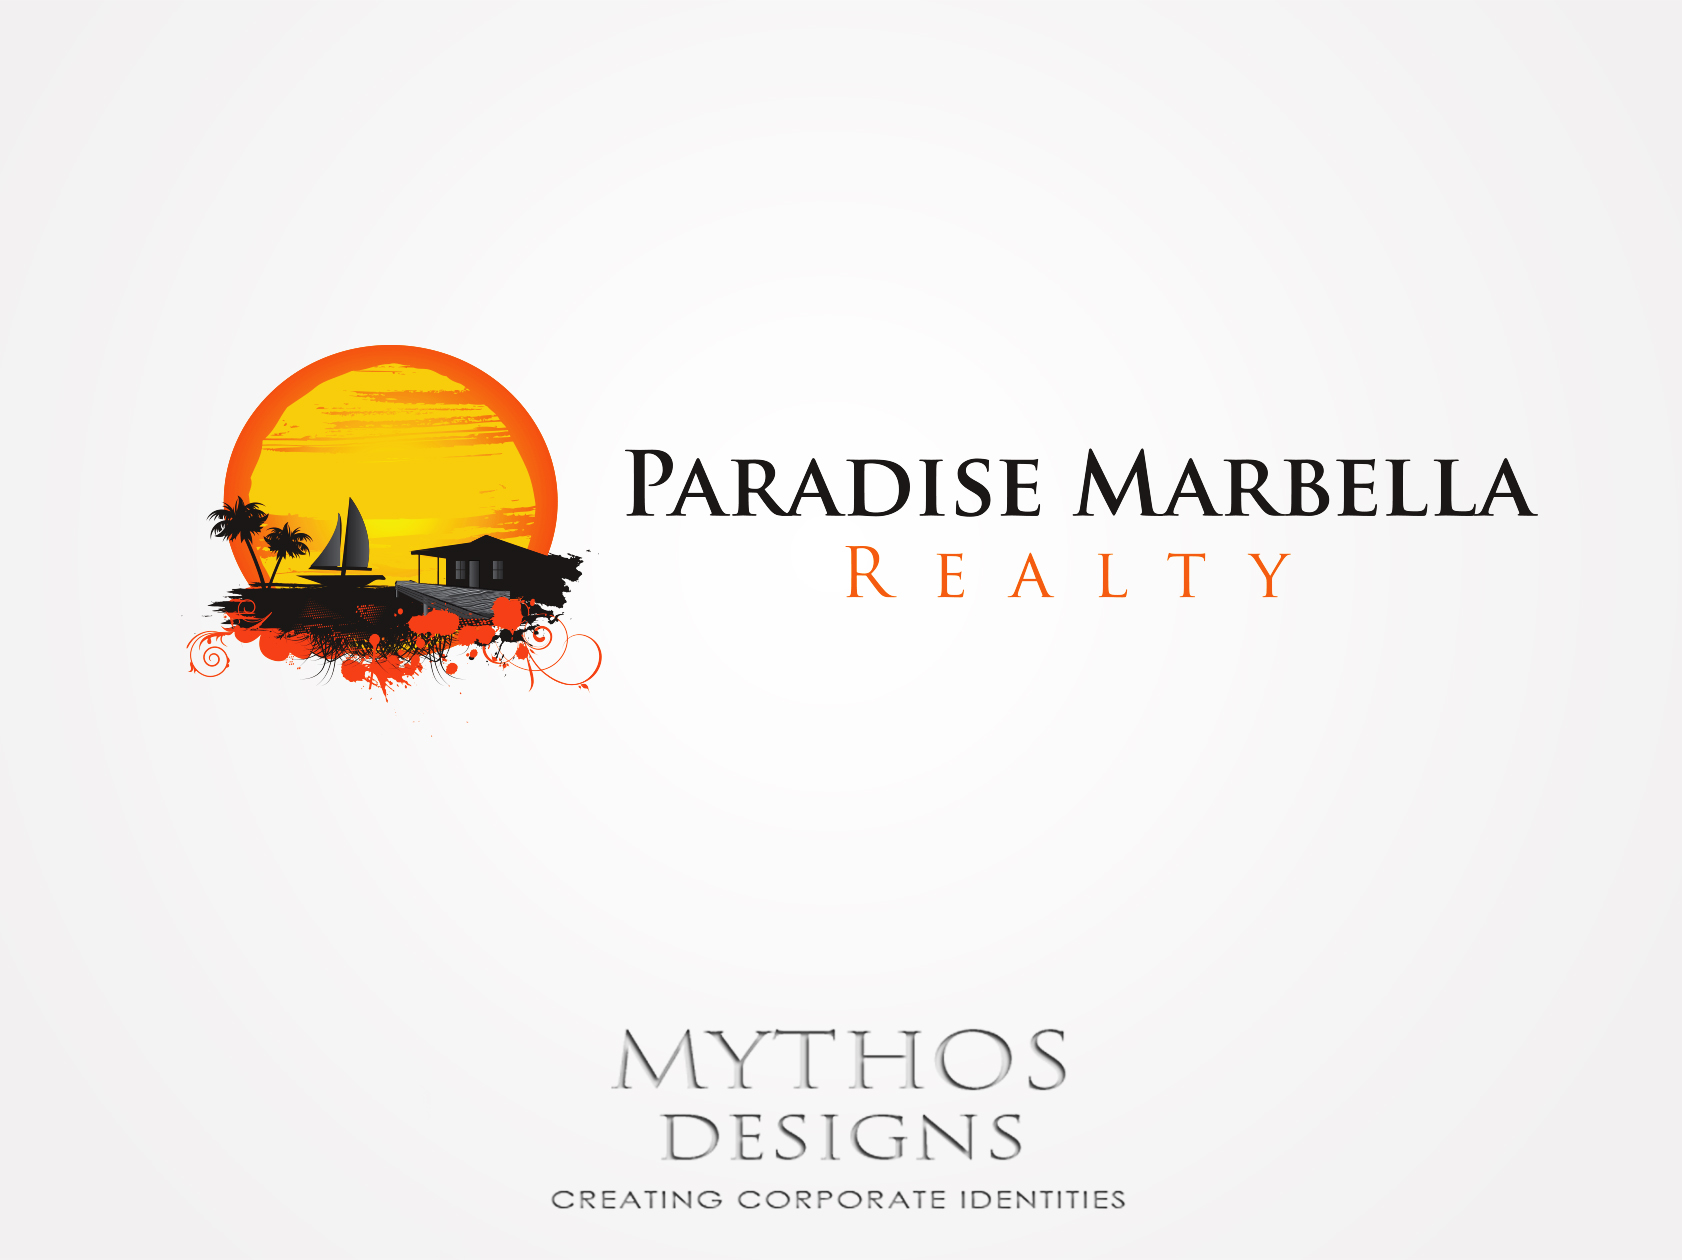 Logo Design by Mythos Designs - Entry No. 68 in the Logo Design Contest Captivating Logo Design for Paradise Marbella Realty.